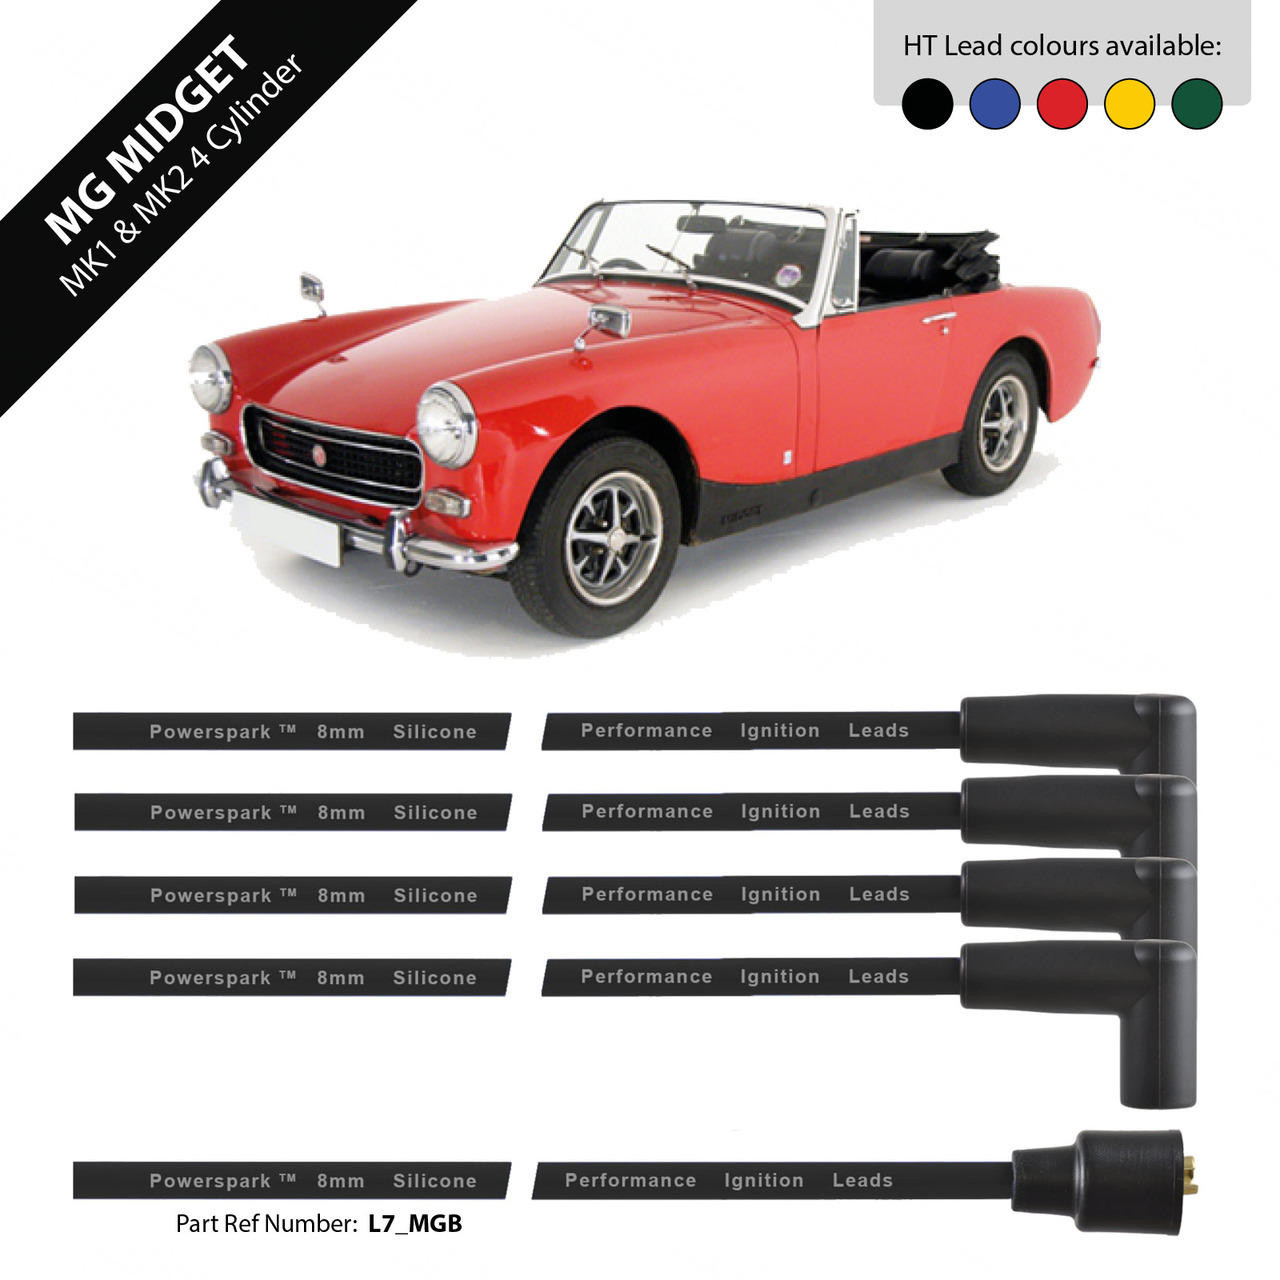 Powerspark MG Midget MK1, MK2 HT Leads 8mm Double Silicone